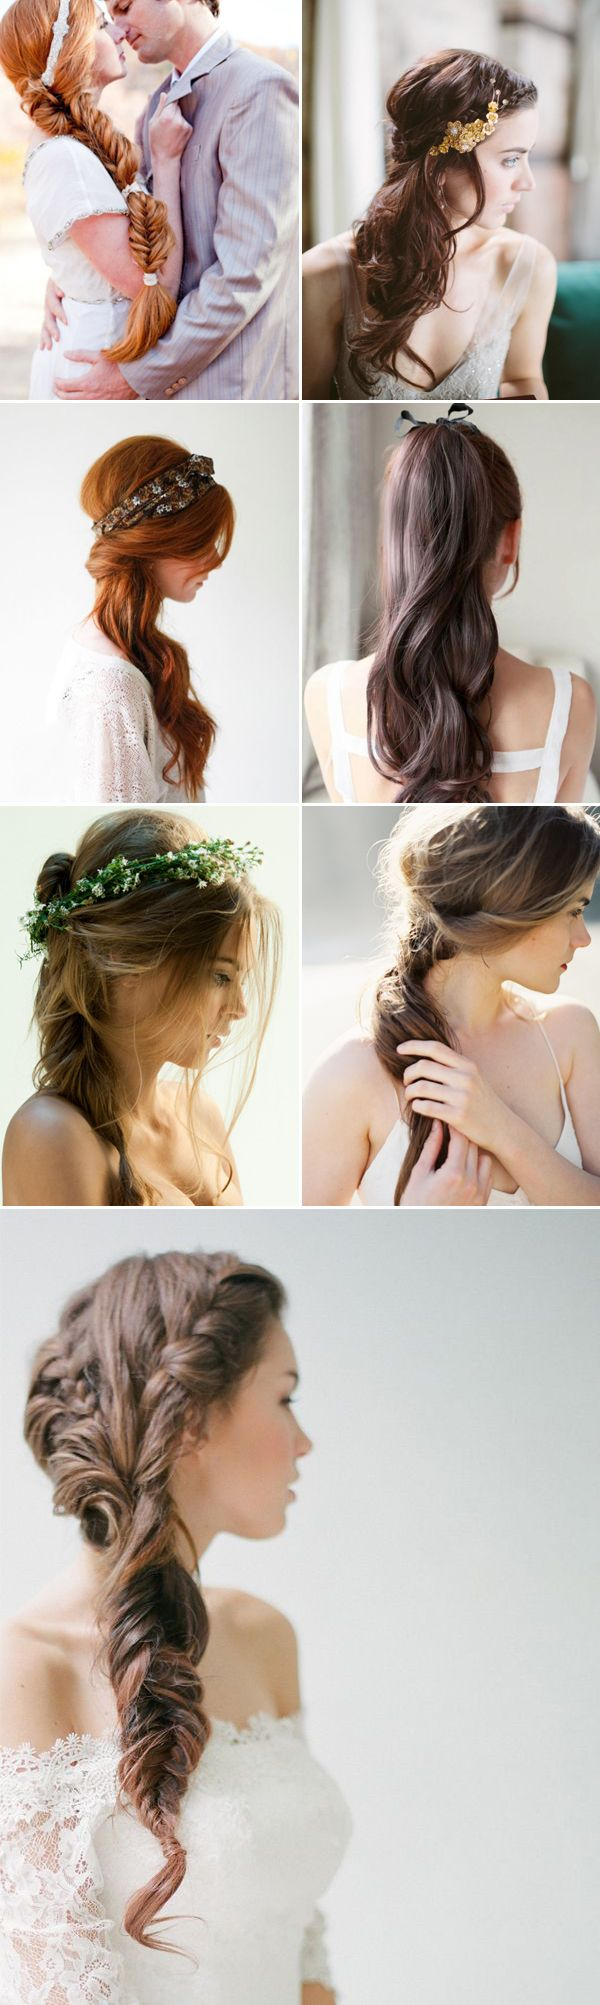 17 Best images about hair on Pinterest | Dark brown, On my own and ...